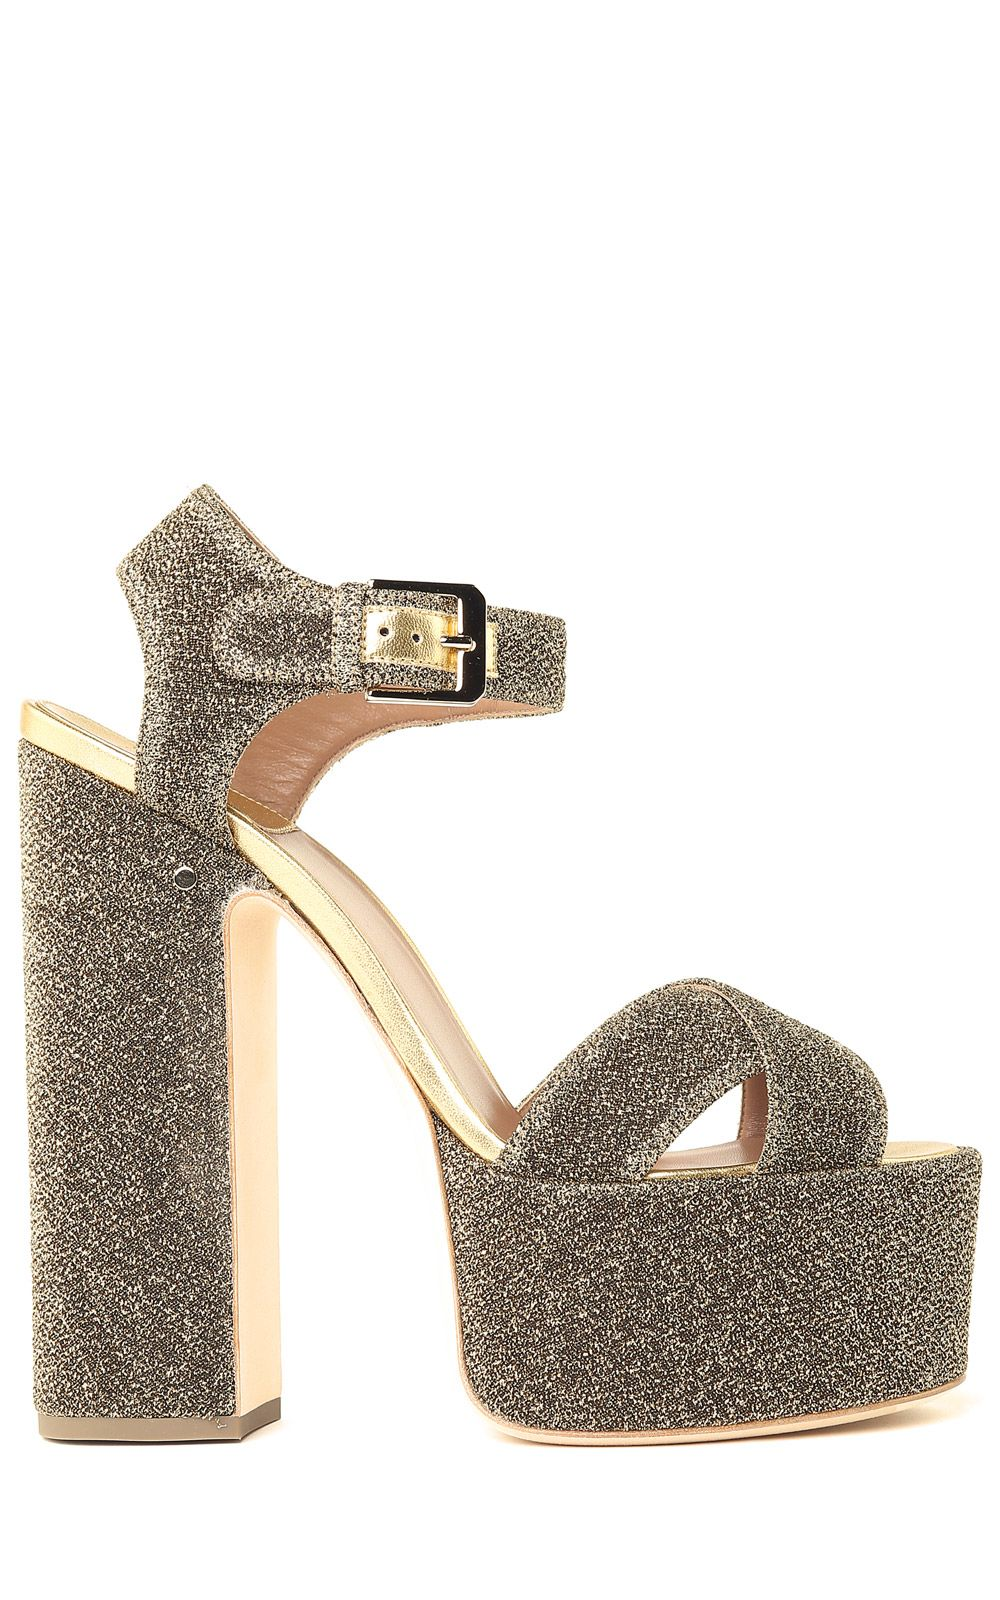 Laurence Dacade Rosella glittered sandals sale excellent 5t0gs5lR2